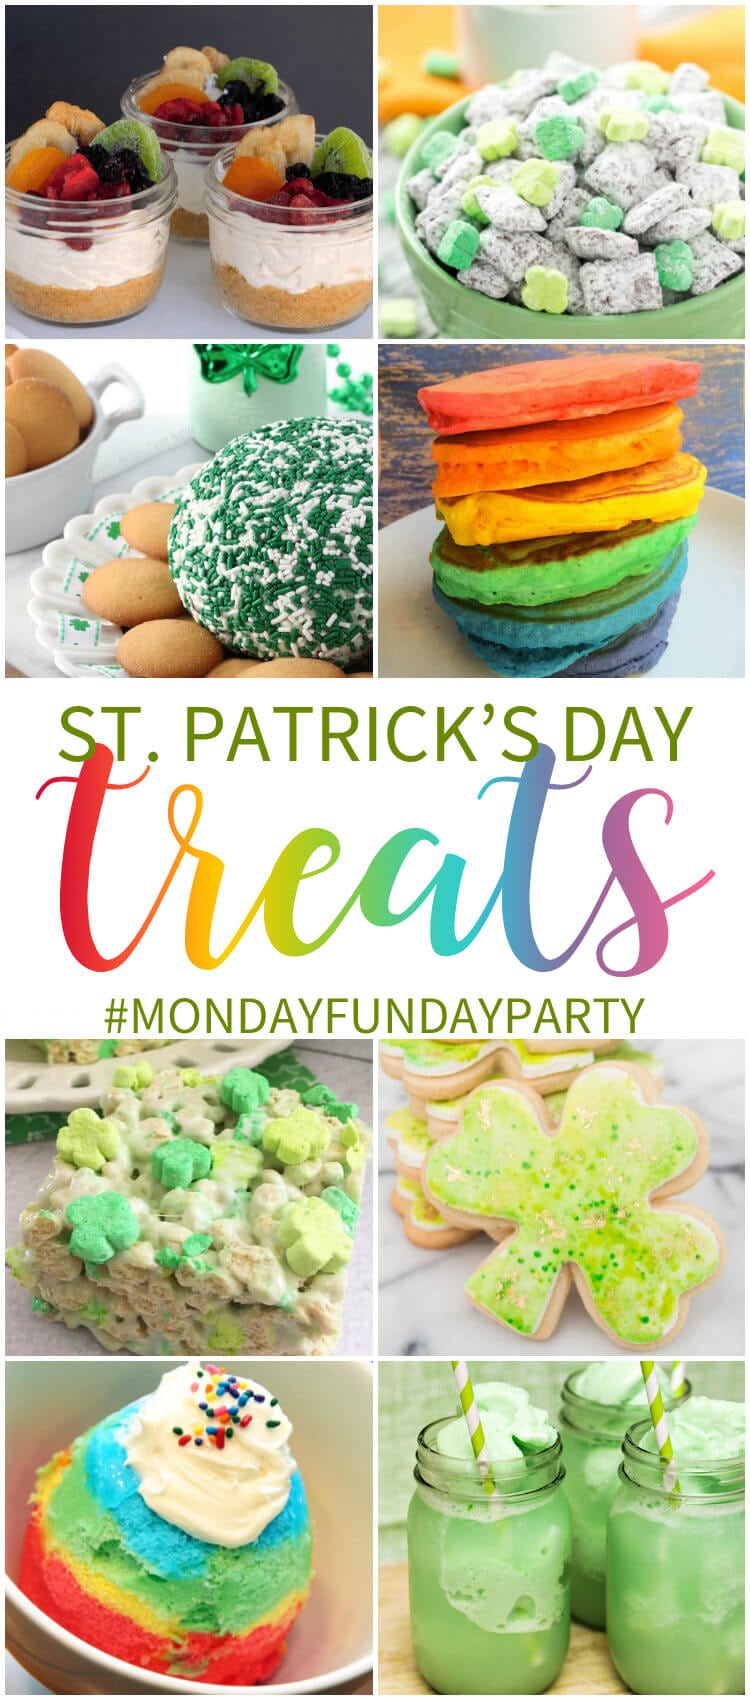 St. Patrick's Day Treat Ideas - Monday Funday Link Party at www.thatswhatchesaid.com